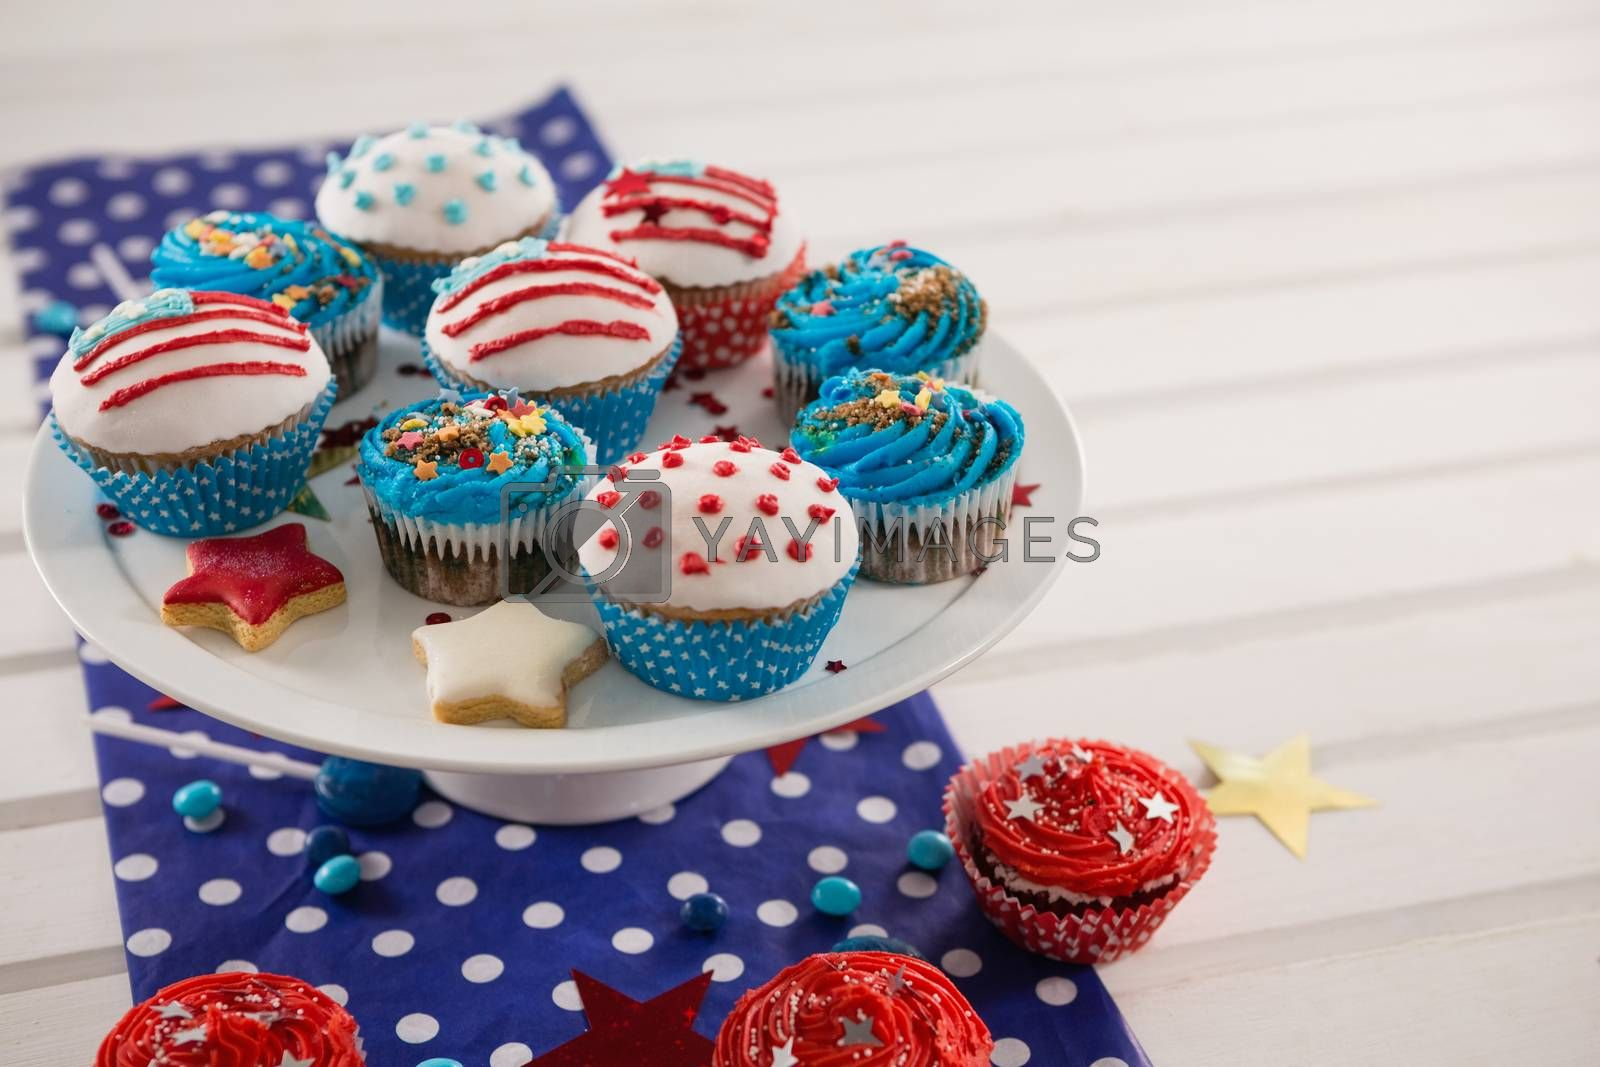 Decorated cupcakes with 4th july theme arranged on plate